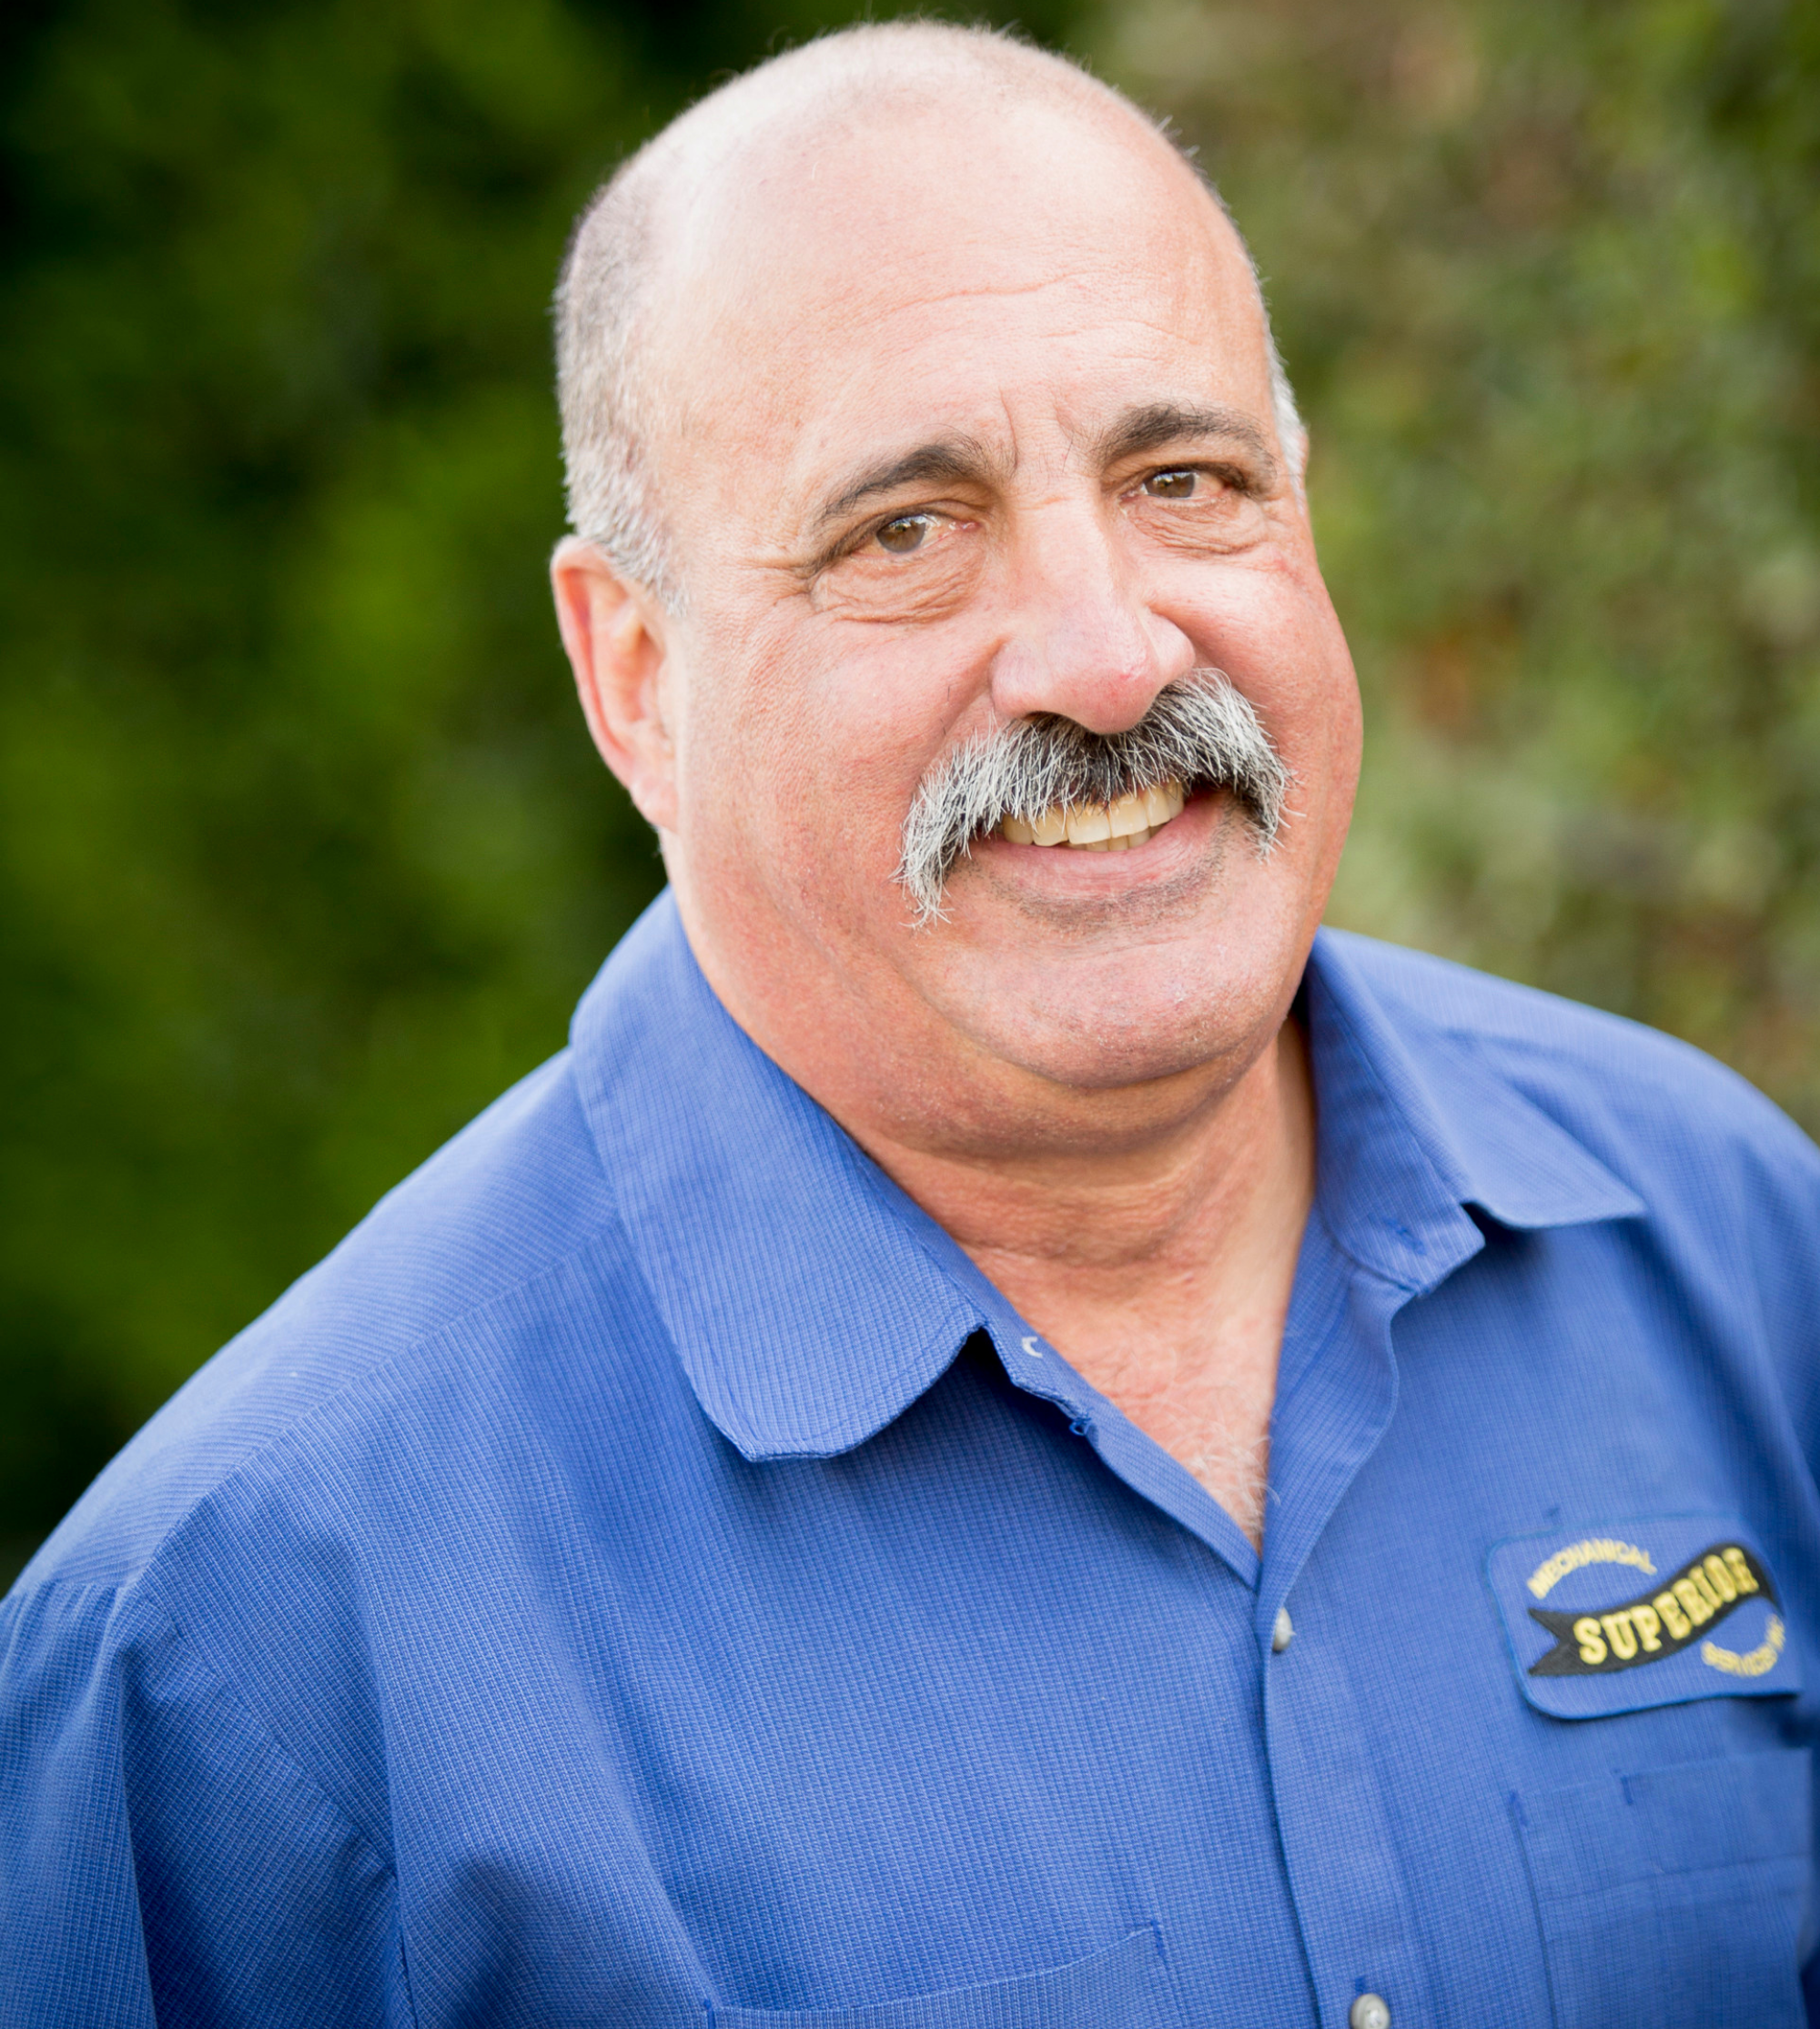 Air conditioning contractor, Heating contractor